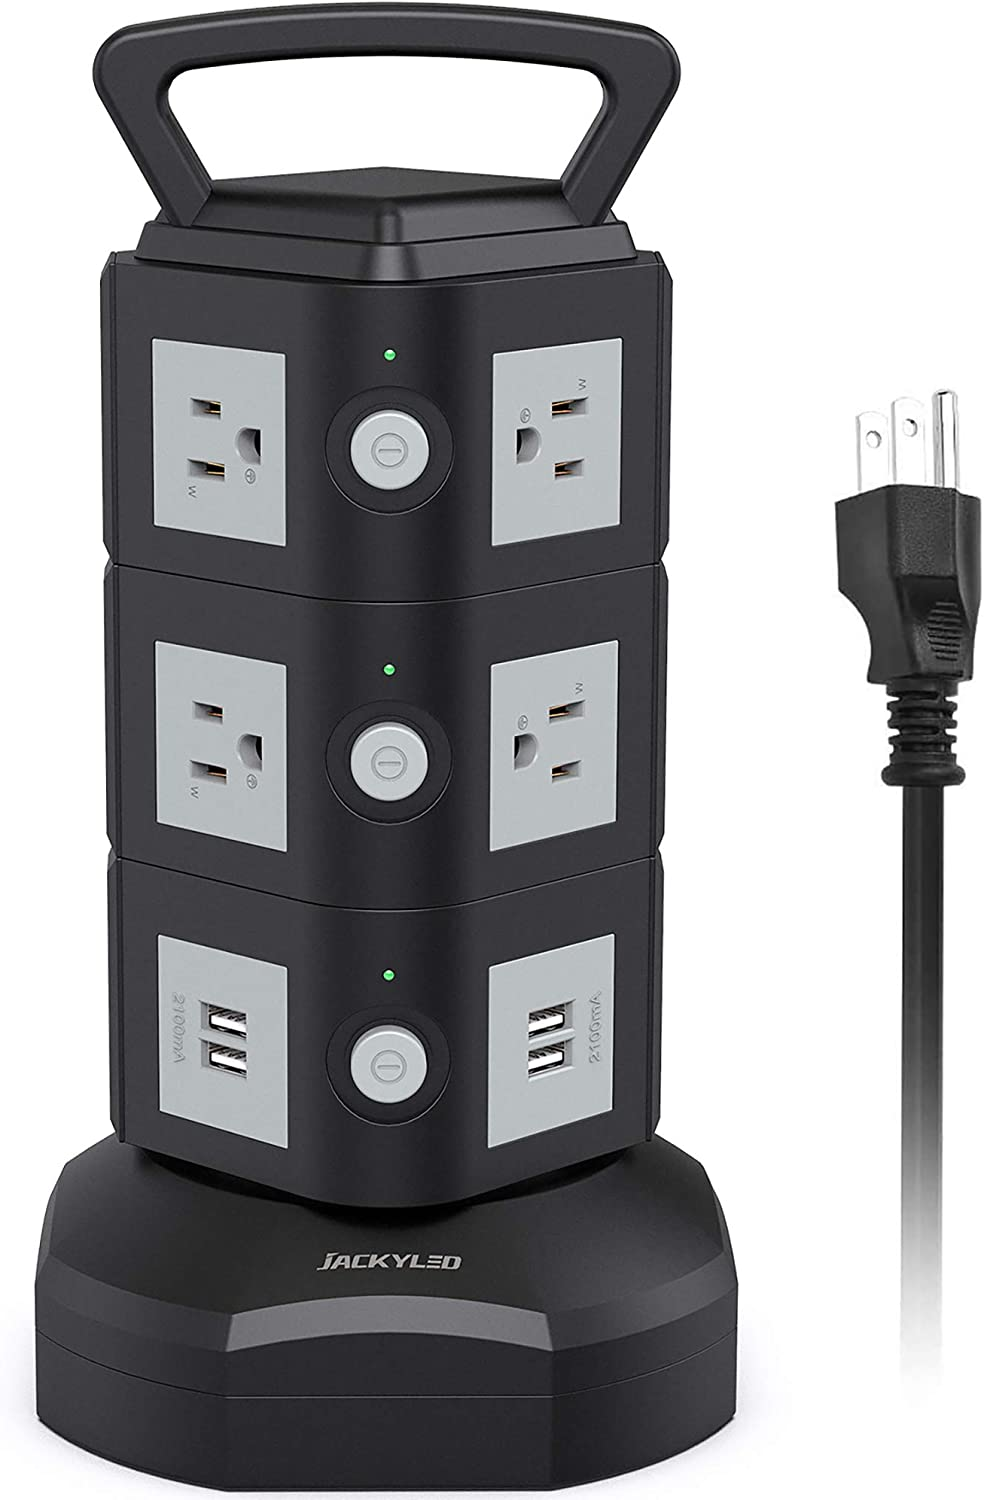 Power Strip Surge Protector Tower JACKYLED Electric Charging Station 13A 10 AC Outlets 4 USB Ports with 16AWG 6.5ft Heavy Duty Extension Cord for Home Office Computer Laptop Black Grey